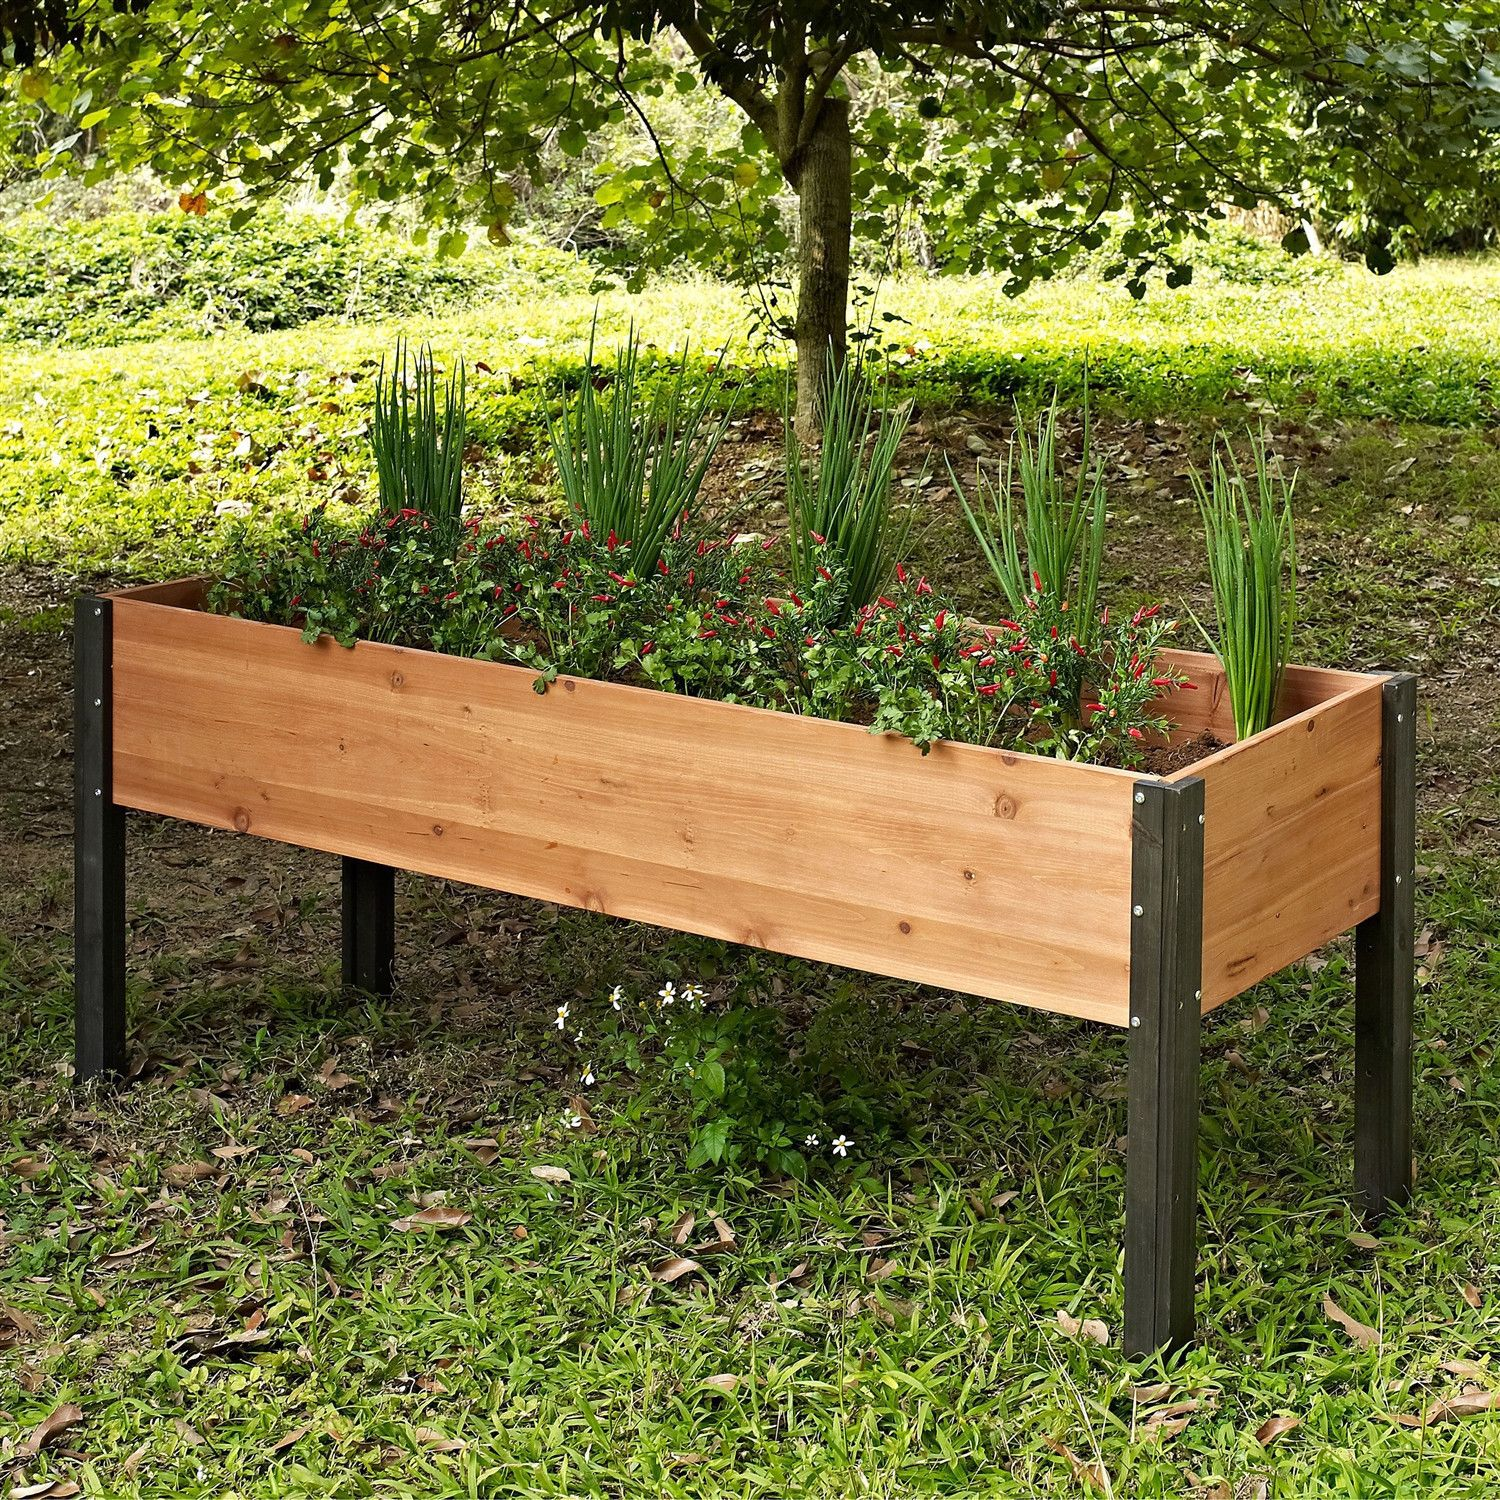 Elevated Outdoor Raised Garden Bed Planter Box 70 X 24 29 Inch High Today Only Take 15 Off W Code Hi6fp1